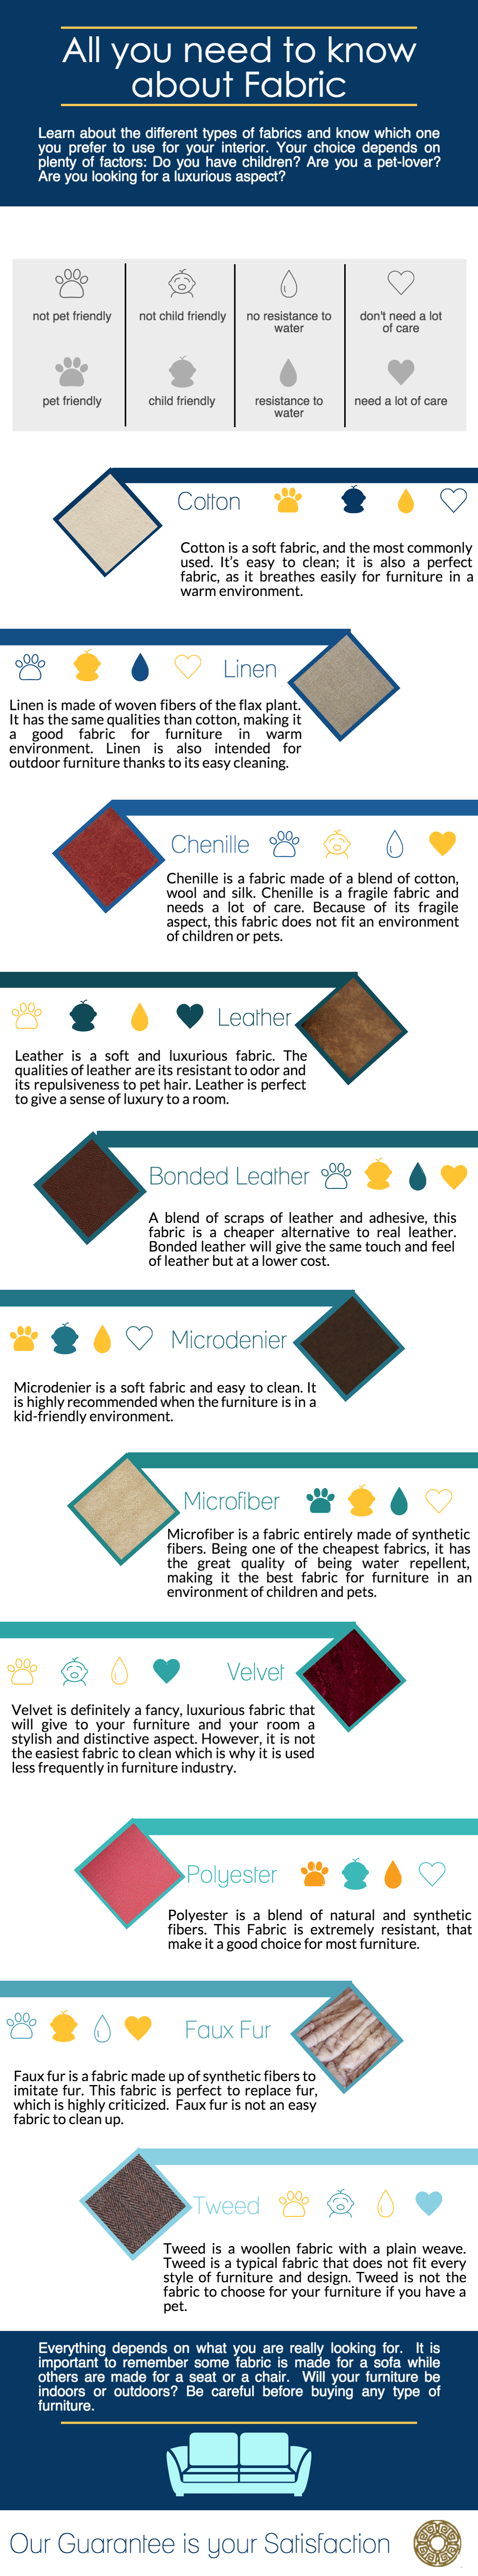 All you need to know about Fabric